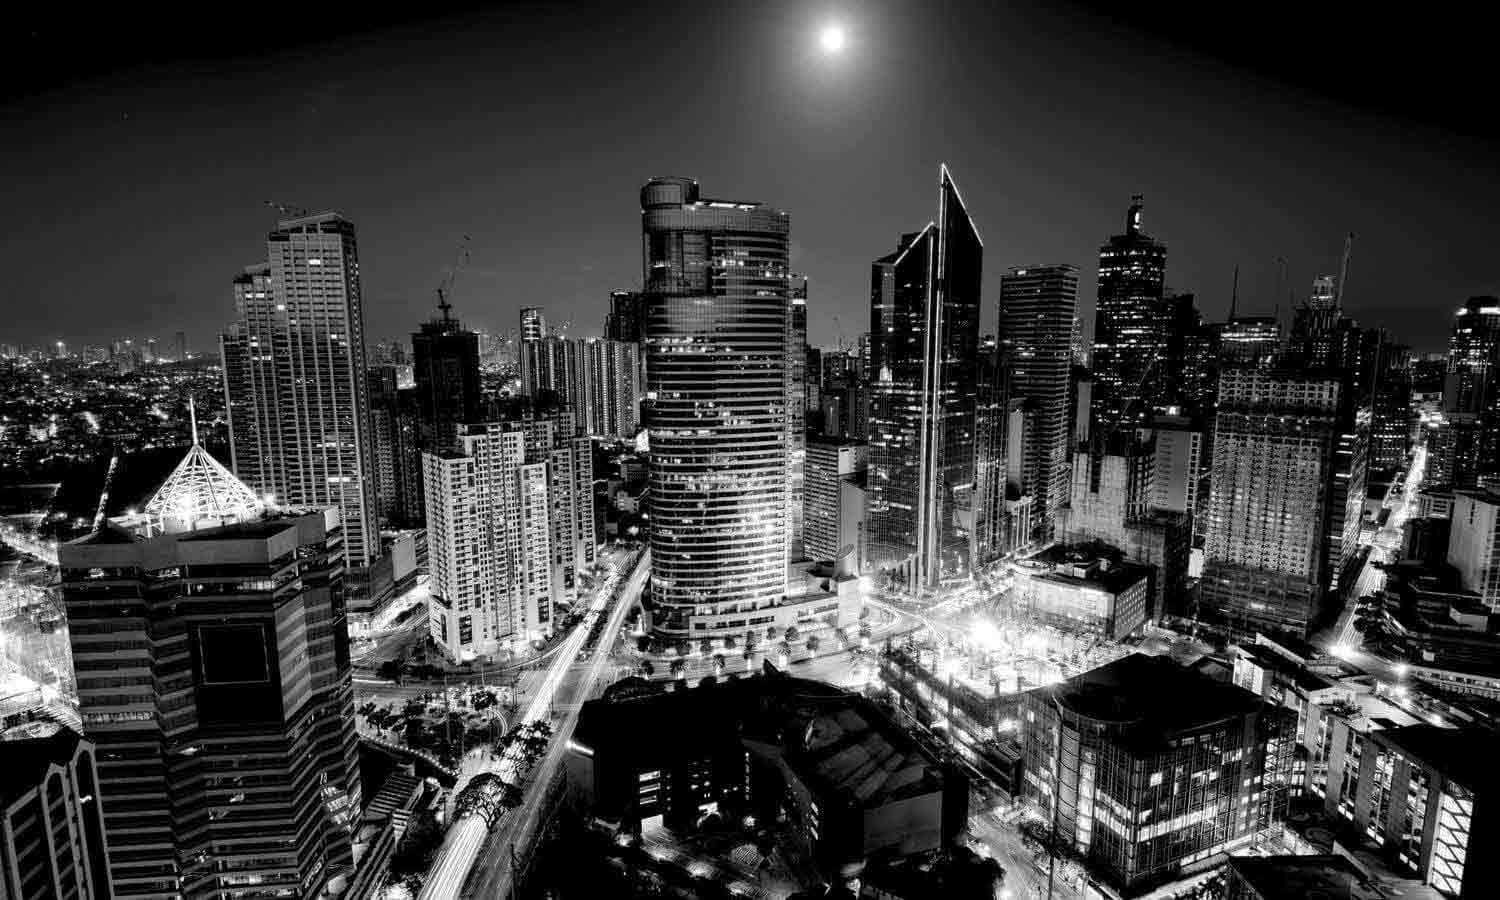 Night view of makati skyline